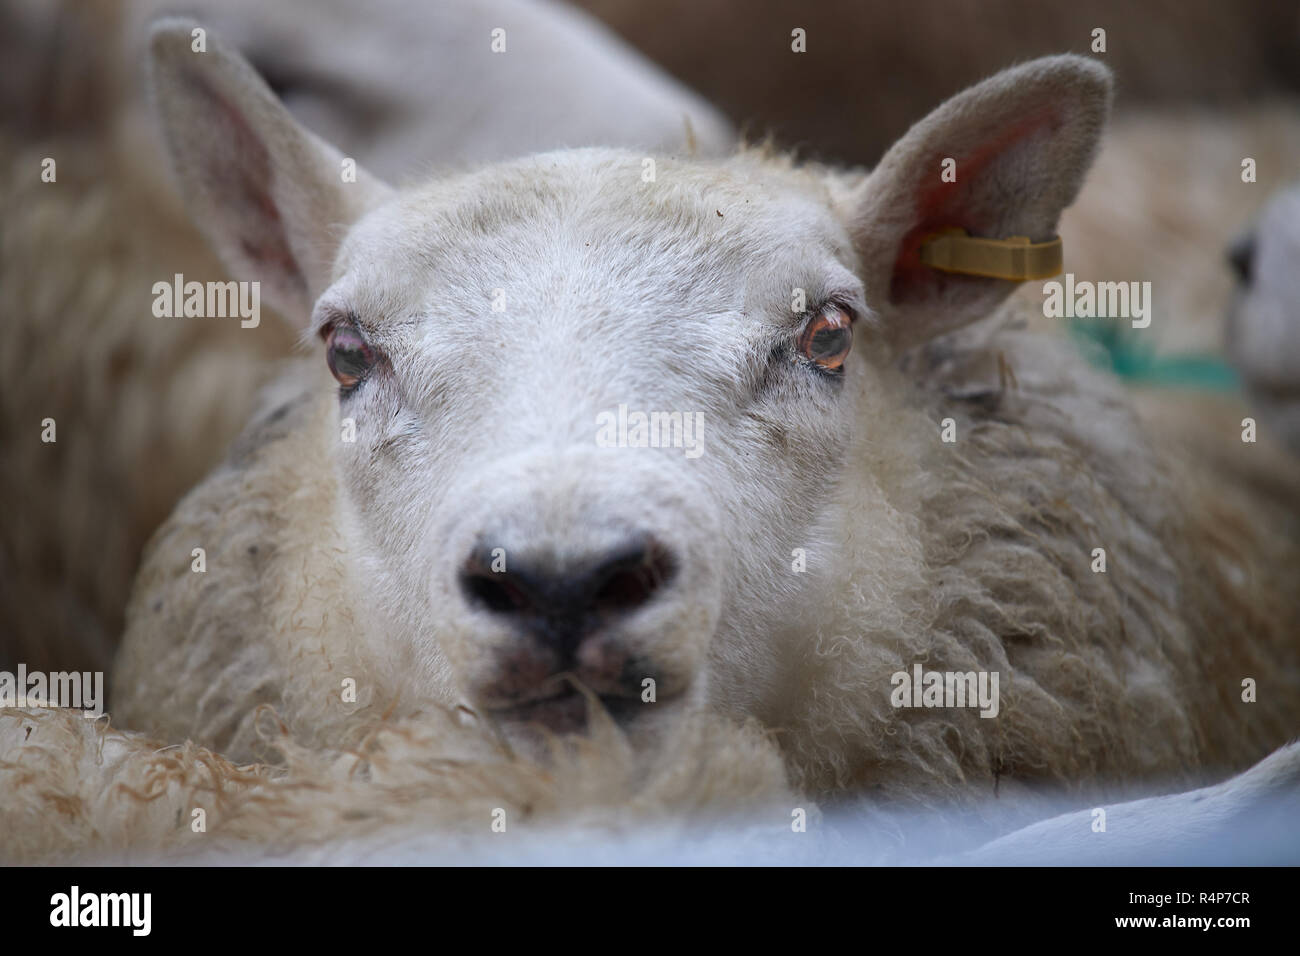 Uppingham, Rutland, UK. 28th November 2018. A lamb in the annual christmastime fatstock competition of primped and preened pigs, sheep and cattle, in the market square at Uppingham, Rutland, England on Wednesday 28th November 2018 Credit: Michael Foley/Alamy Live News - Stock Image